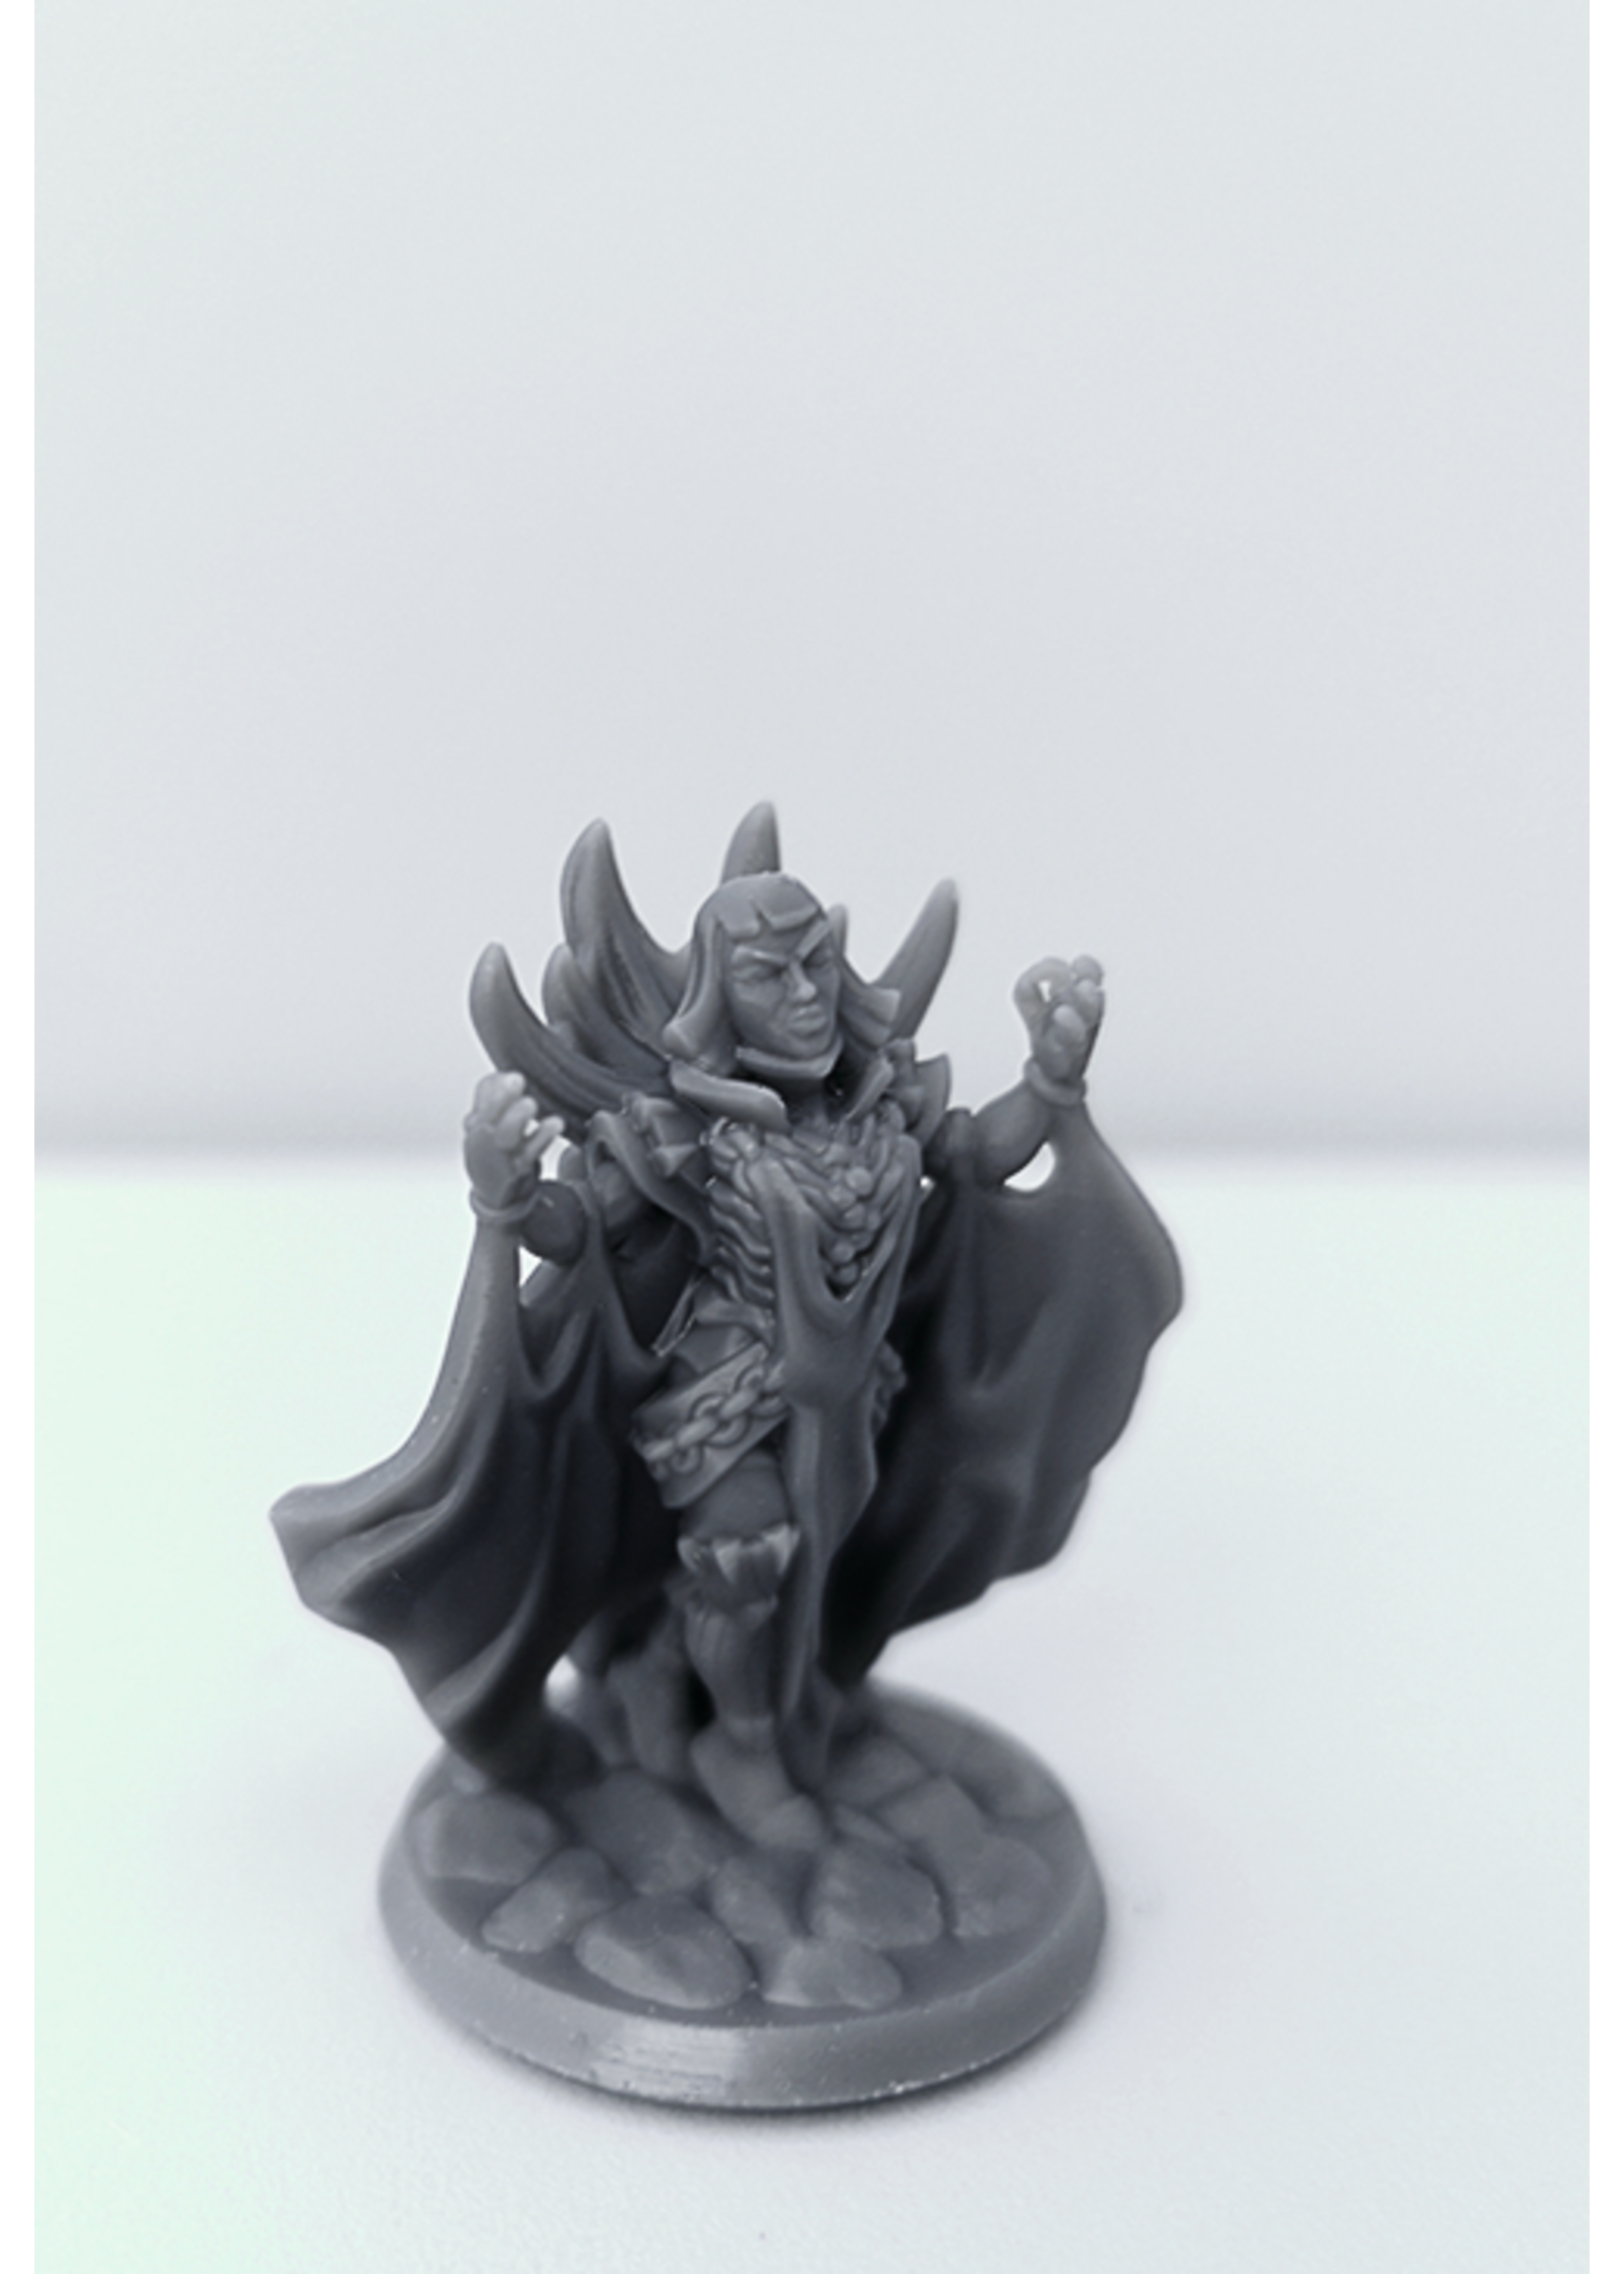 3D Printed Miniature - Necromancer Female 02 - Dungeons & Dragons - Hero of the Realm KS